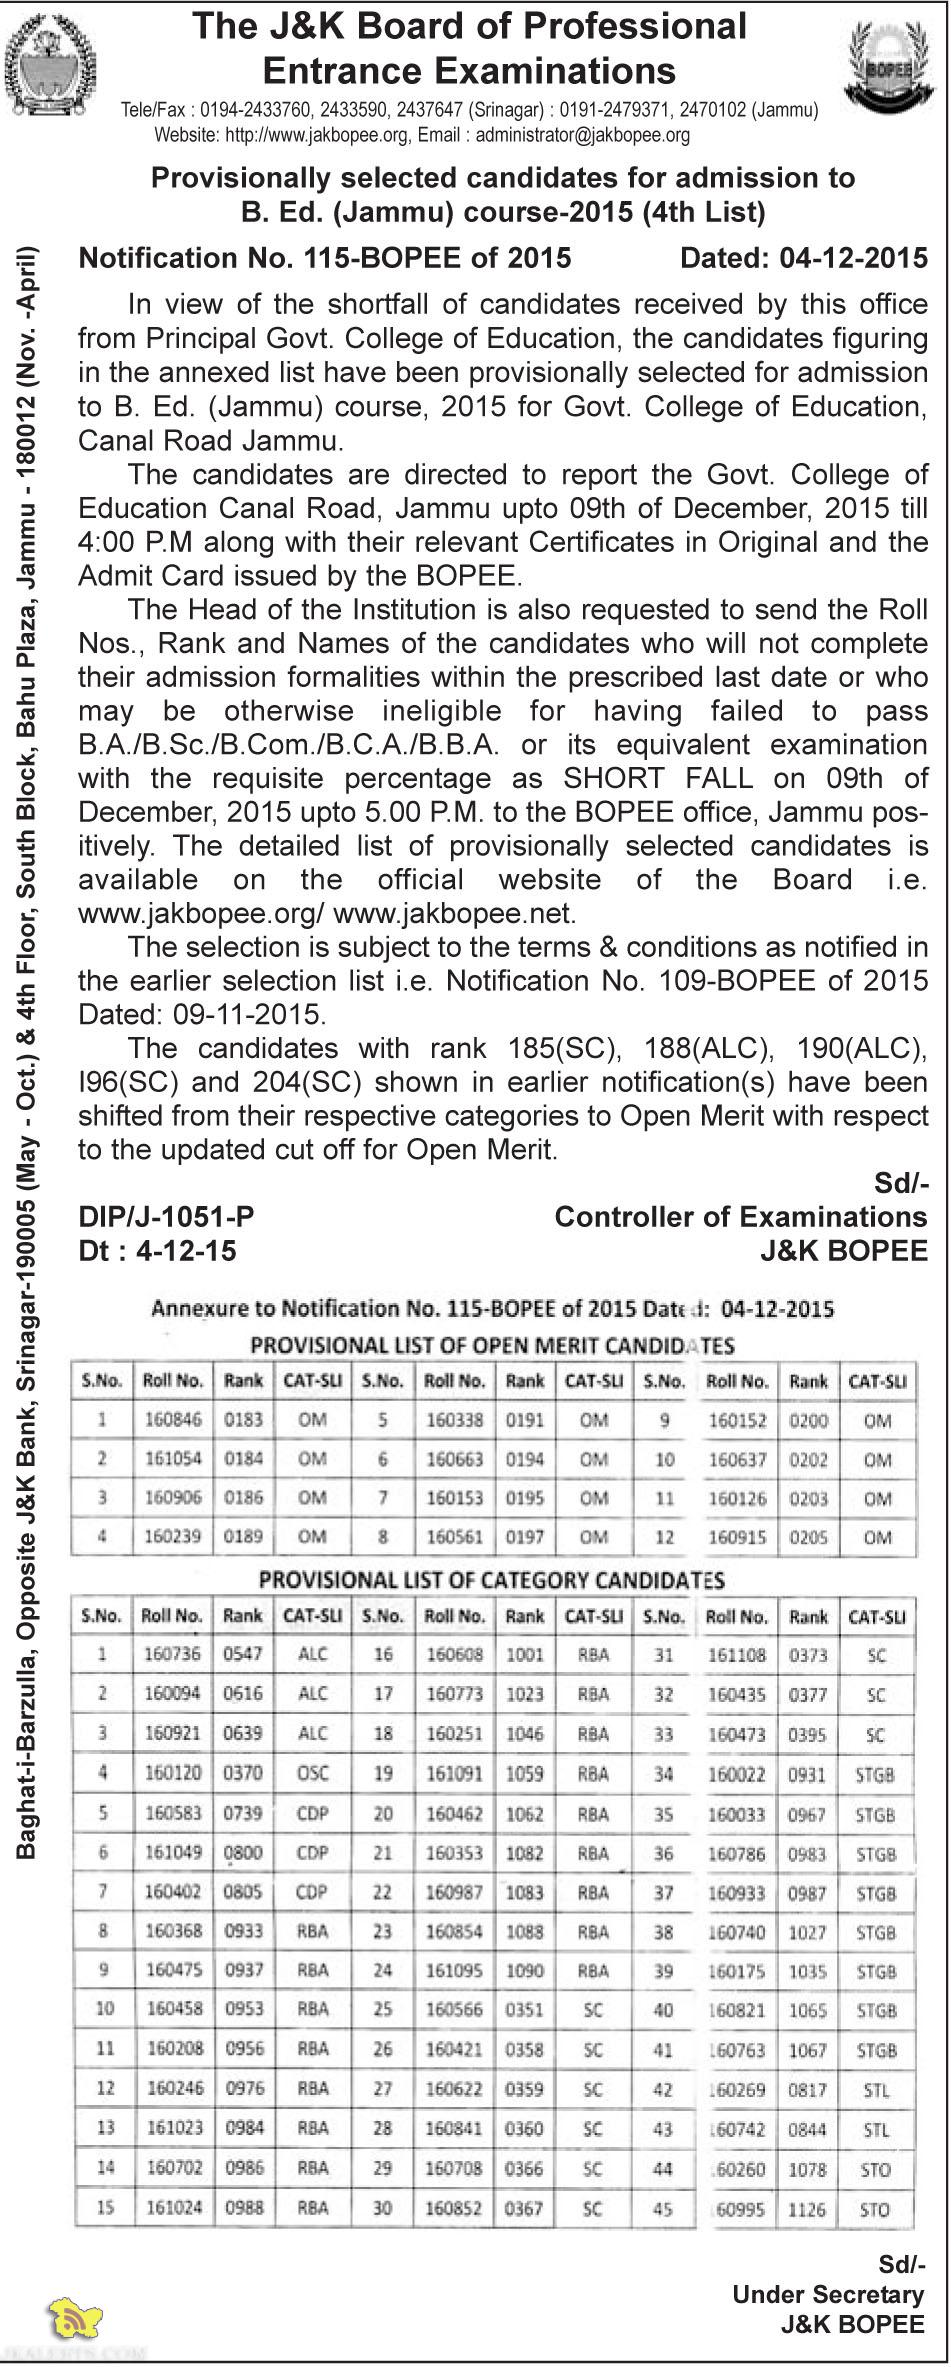 JAKBOPEE Provisionally selected candidates for admission to B. Ed. (Jammu)